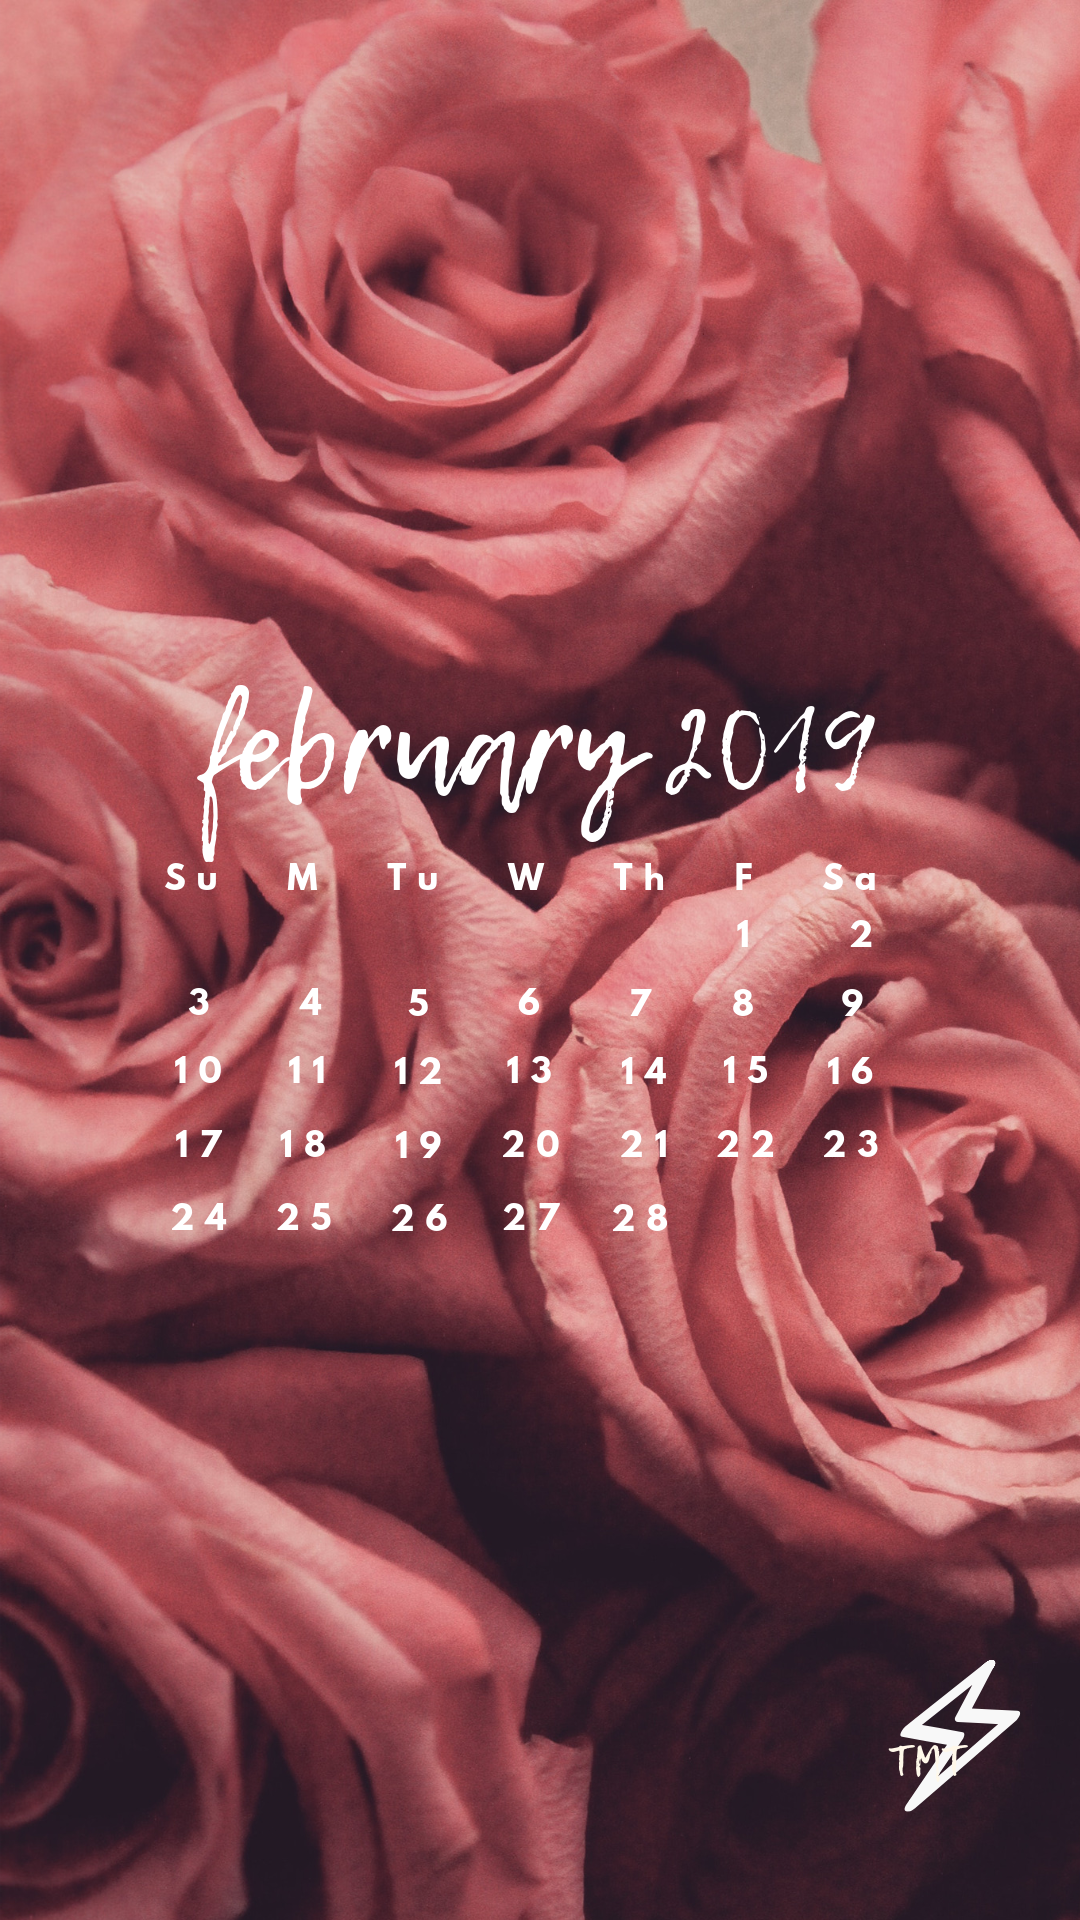 Iphone Or Android February 2019 Wallpaper Valentine S Day